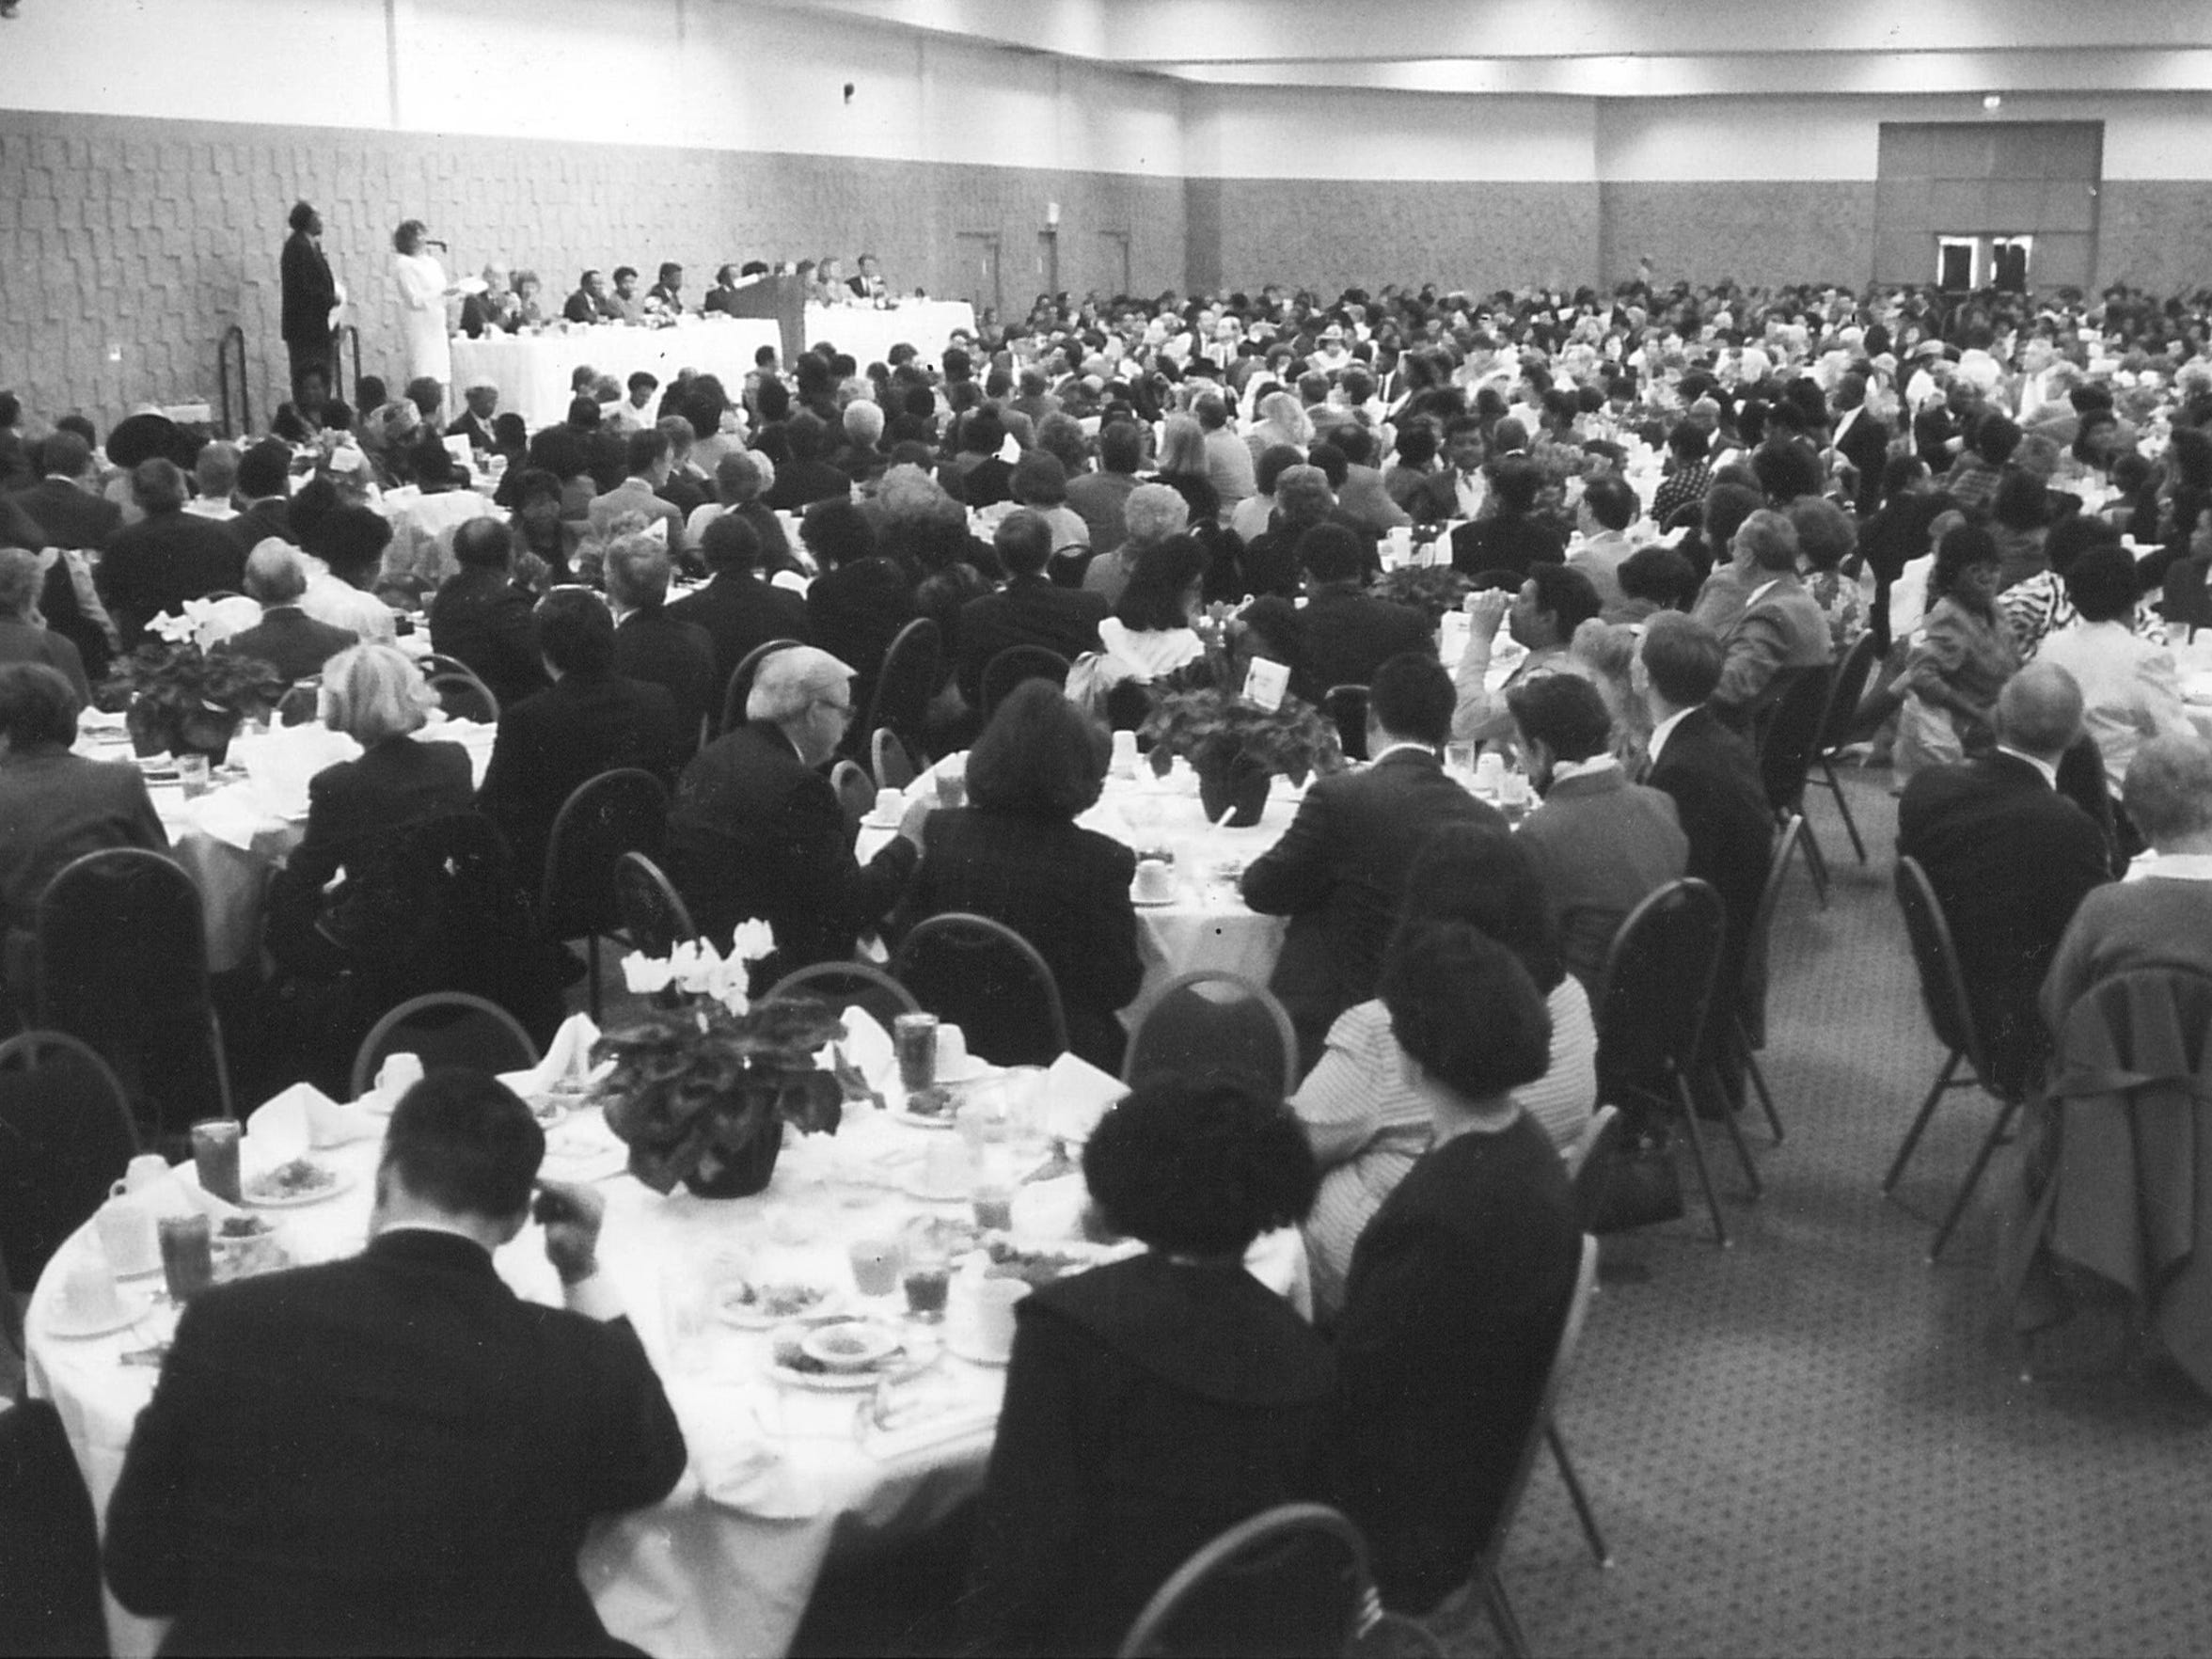 The conference center of the Abilene Civic Center was